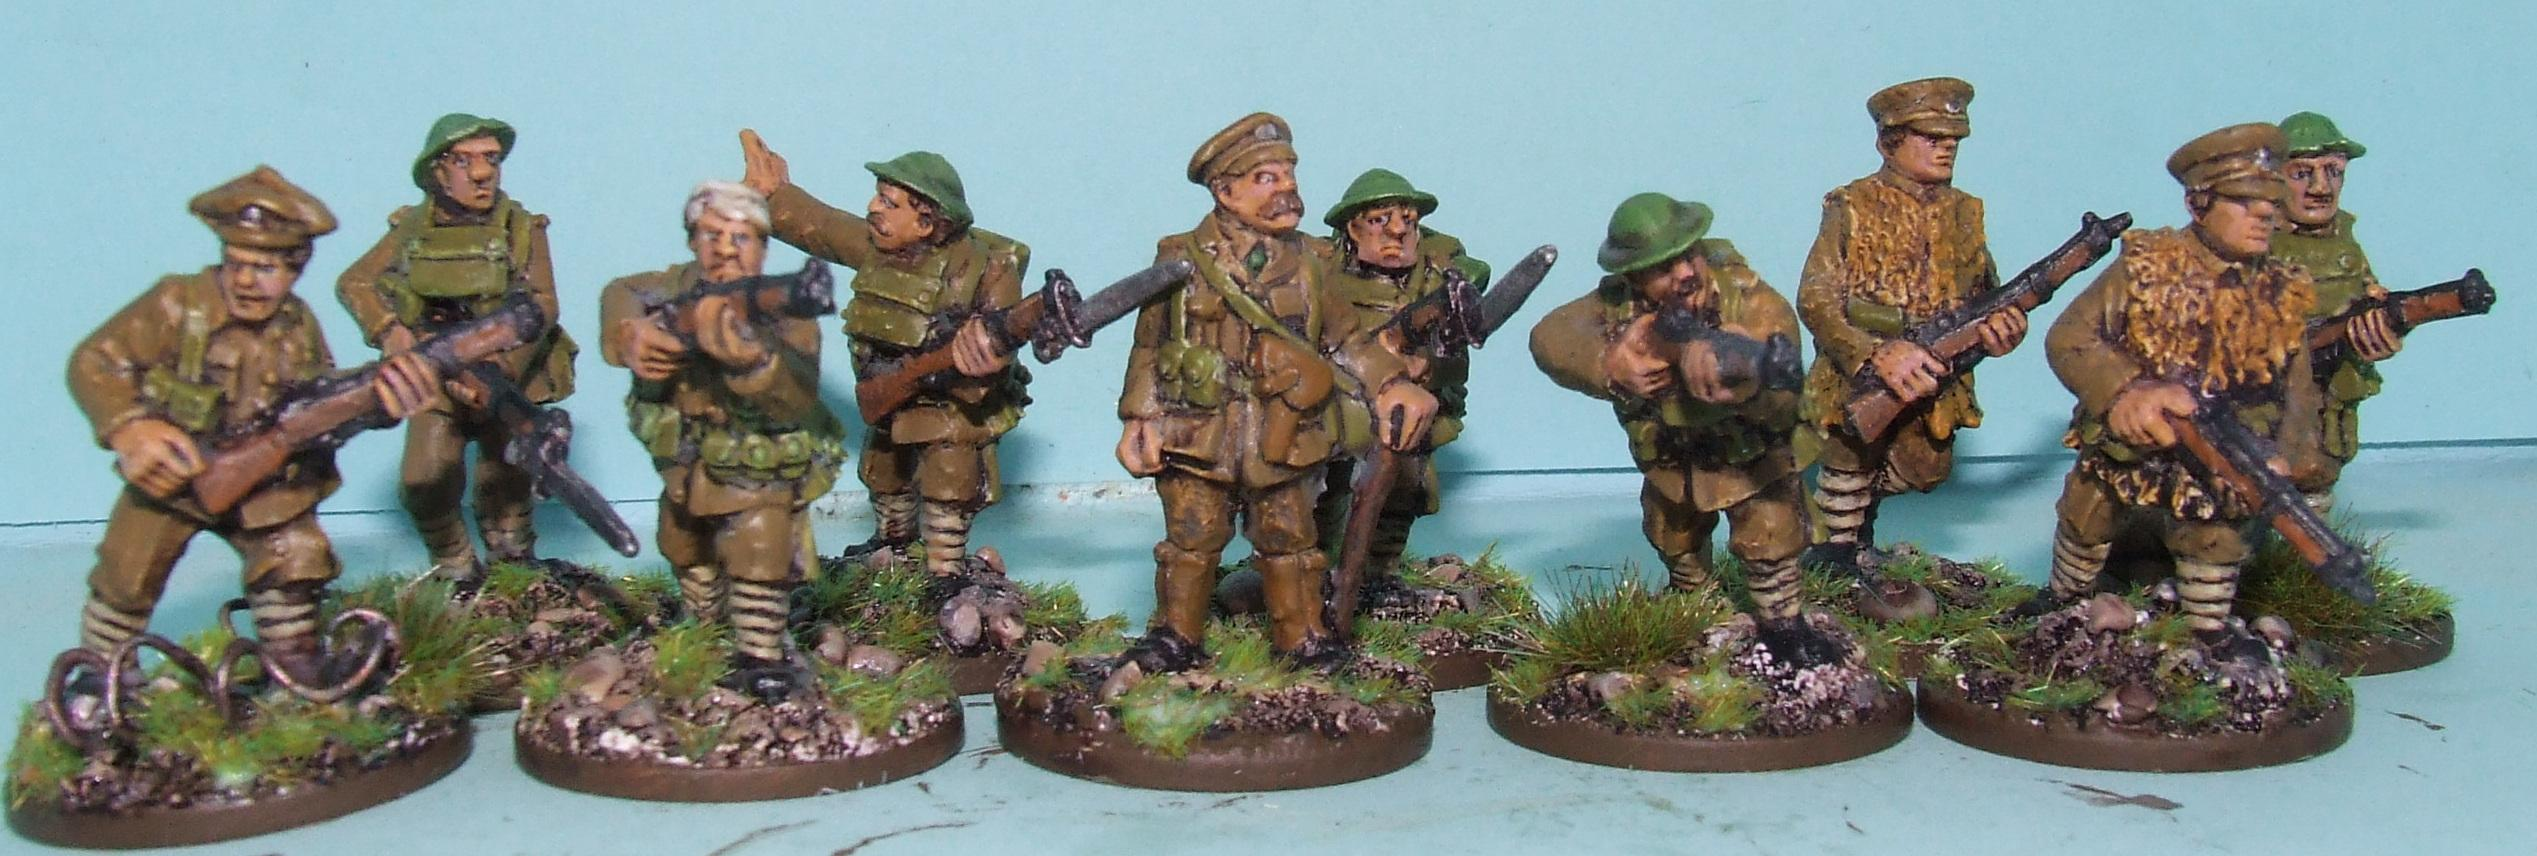 28mm Renegade WWI British